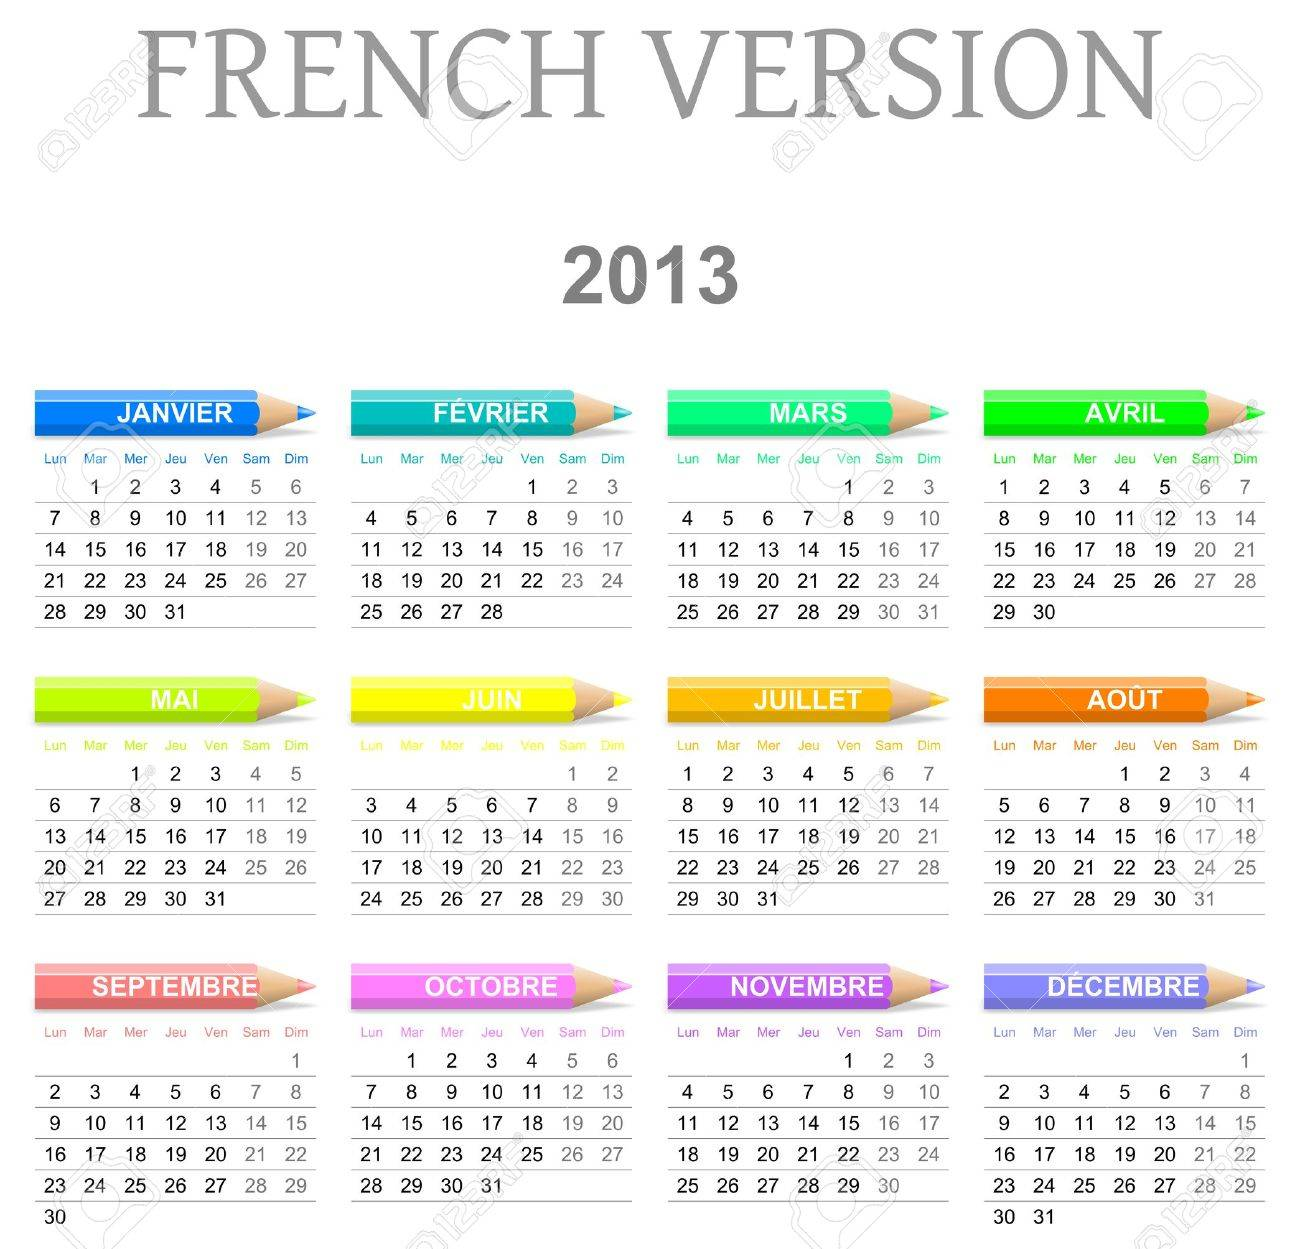 Colorful monday to sunday 2013 calendar with crayons french version illustration Stock Photo - 14636140